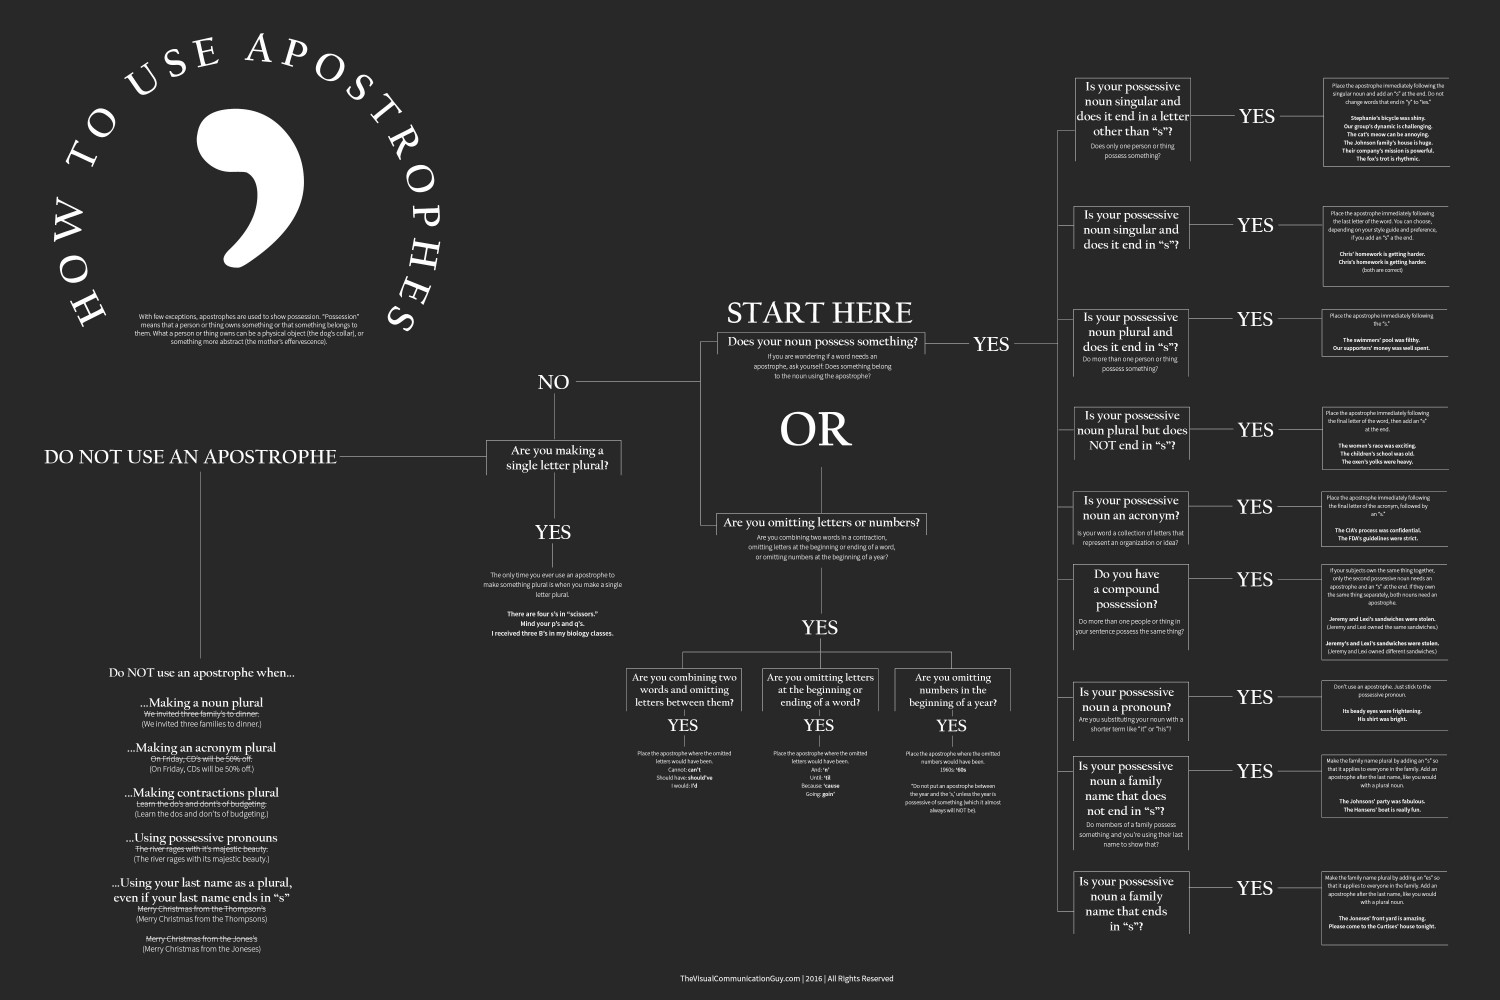 How to Use Apostrophes Infographic